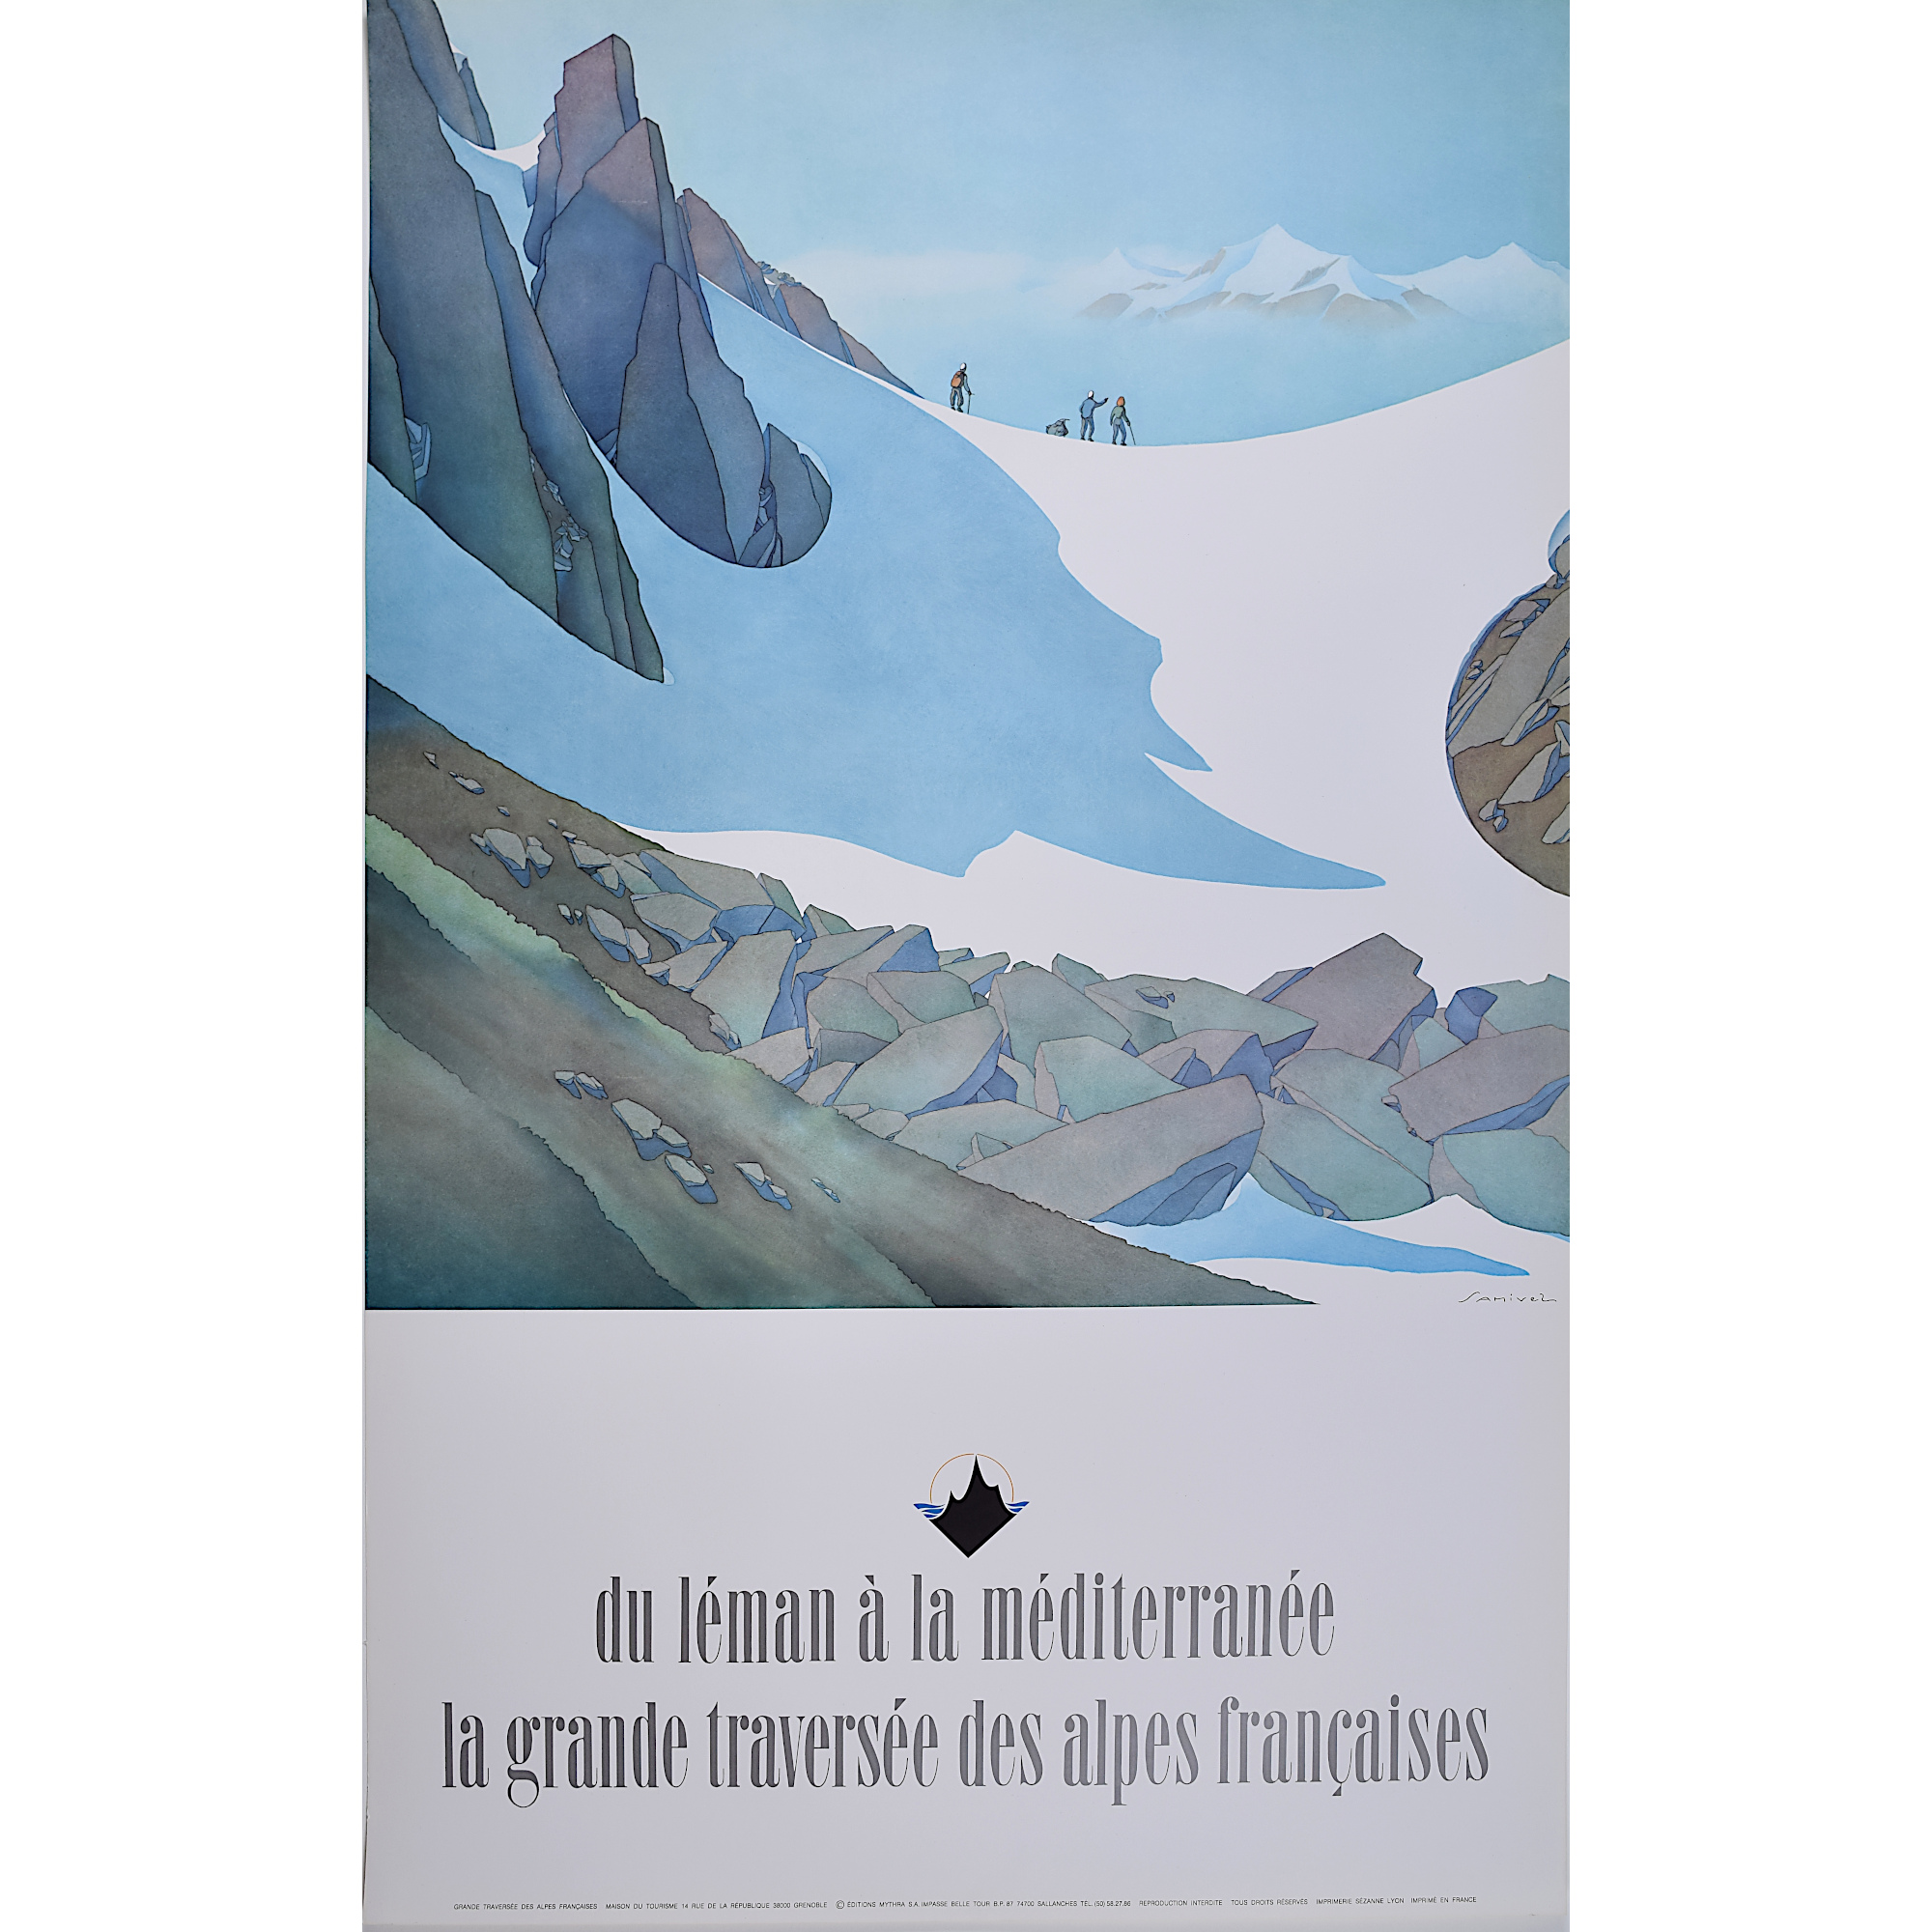 Samivel du Leman skiing poster for sale